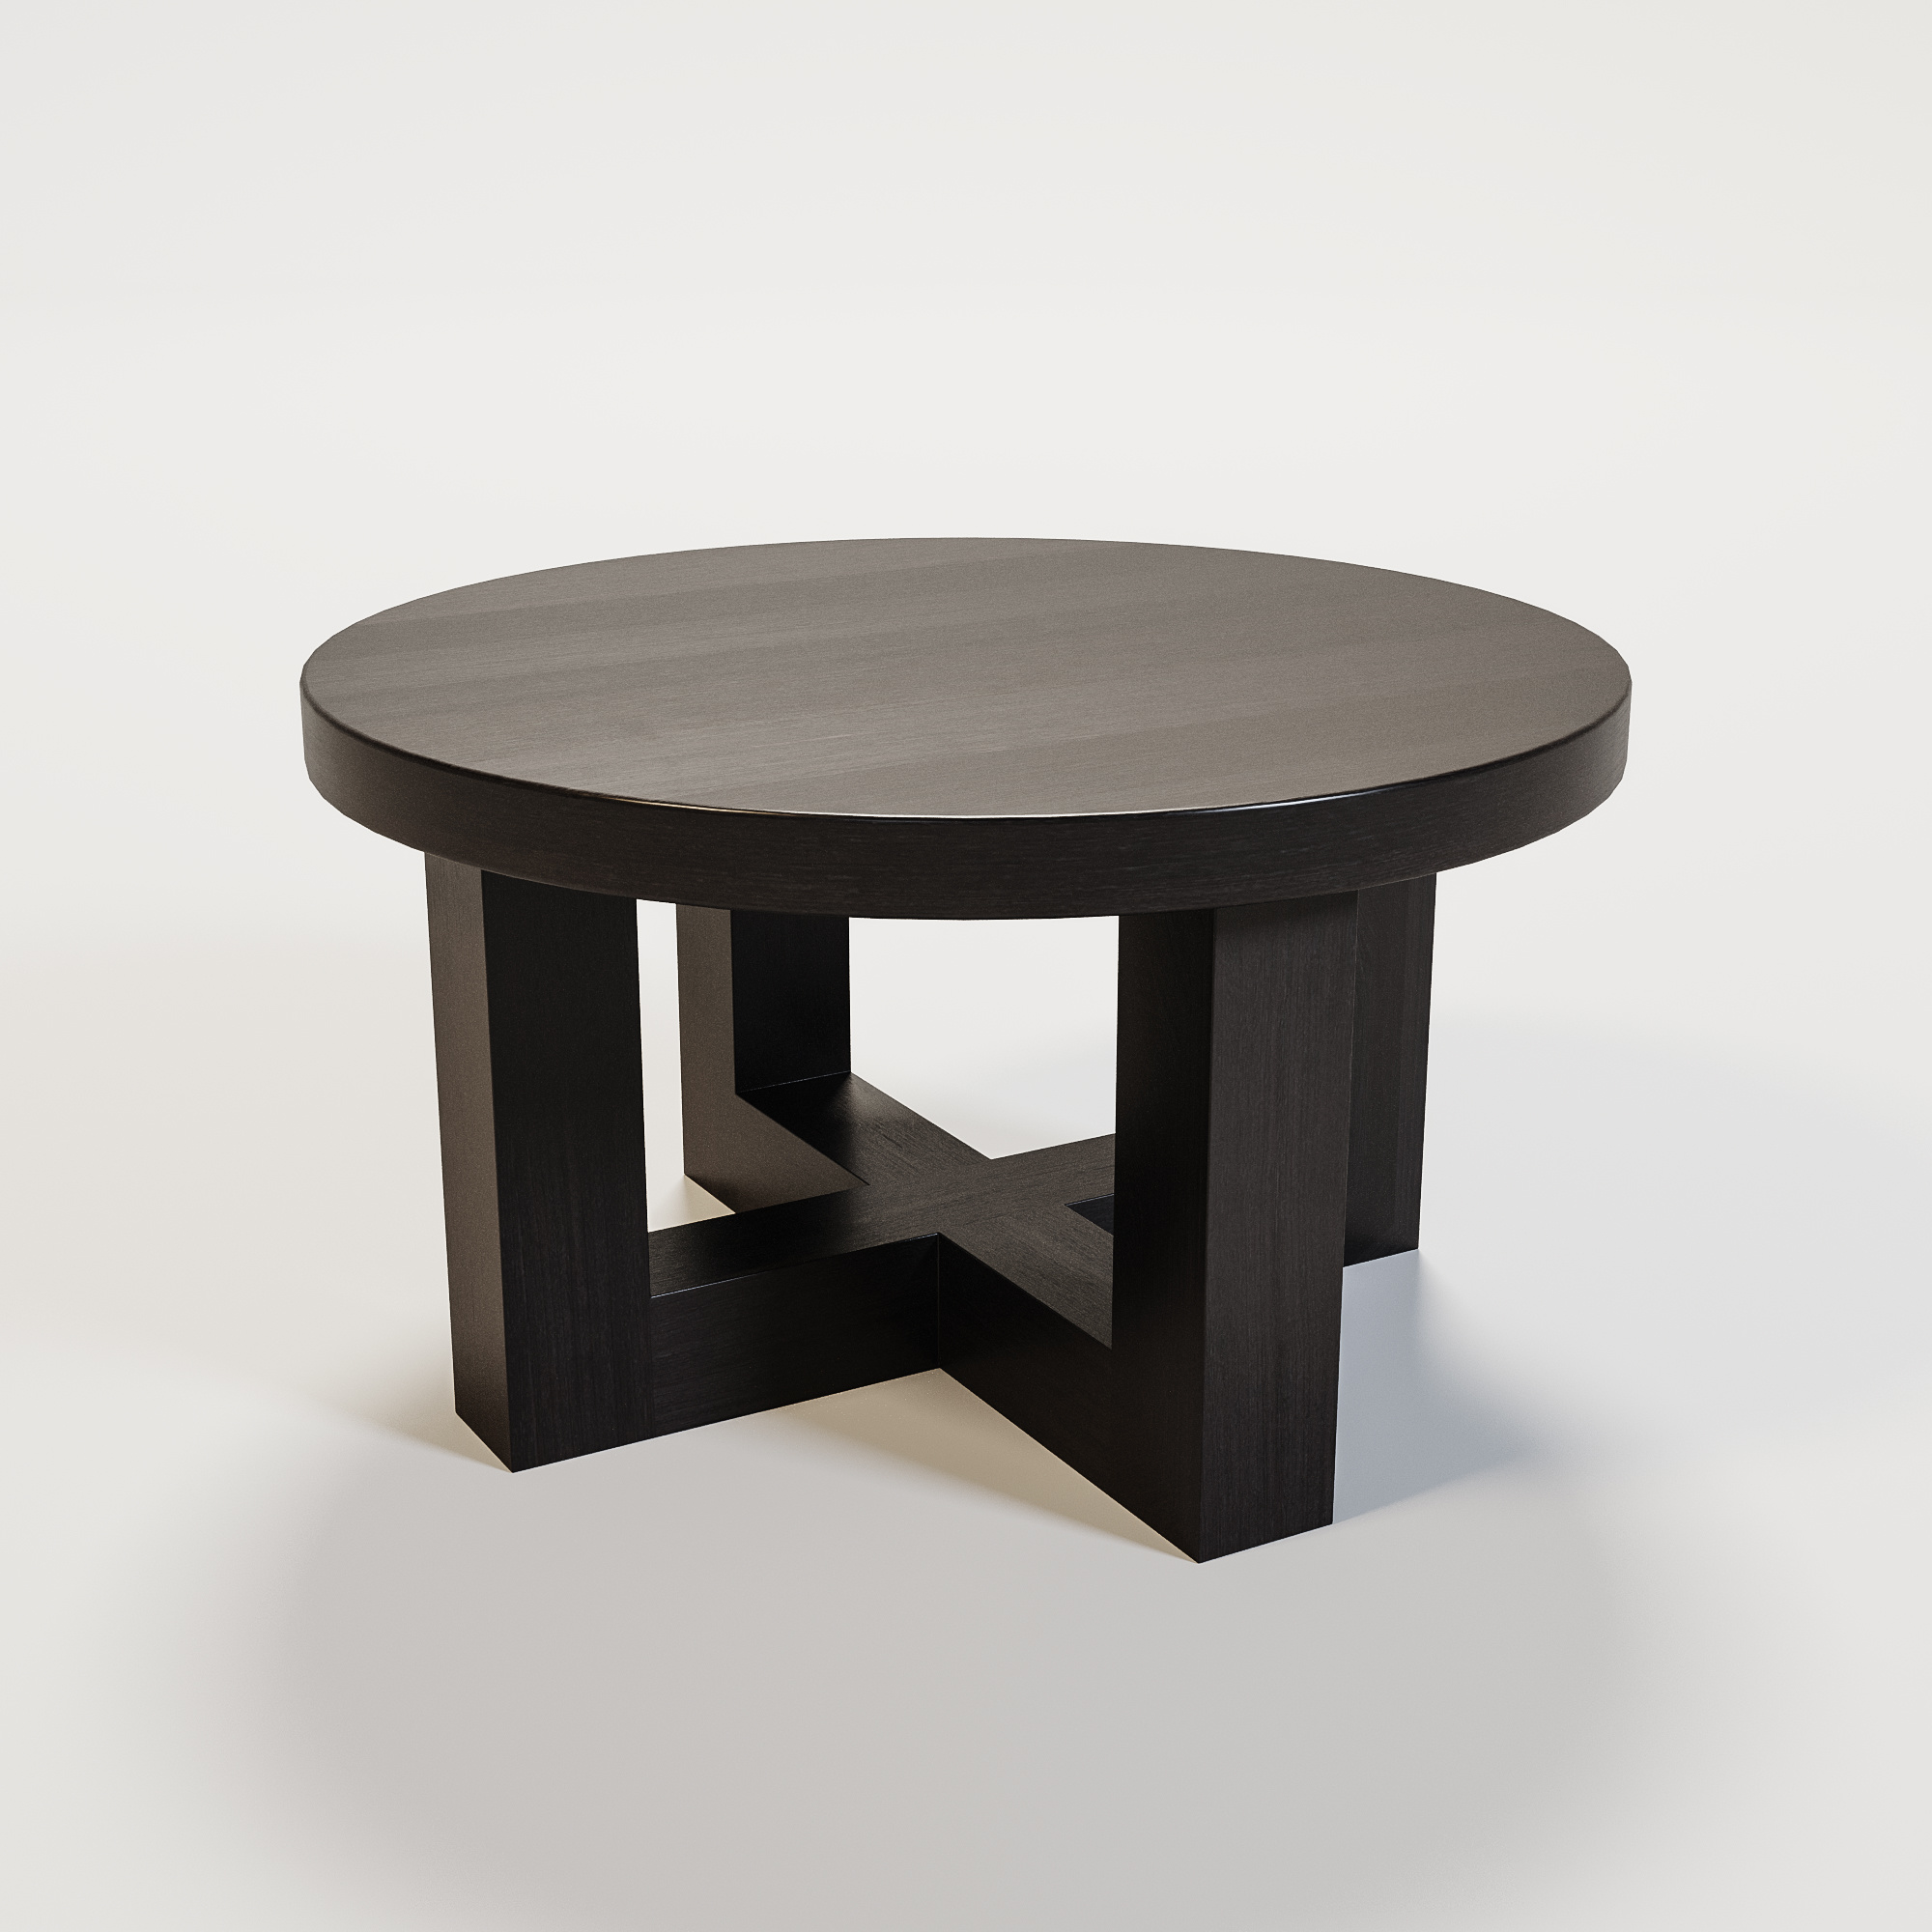 SOHO Coffee table round 60cm smoke wood-1